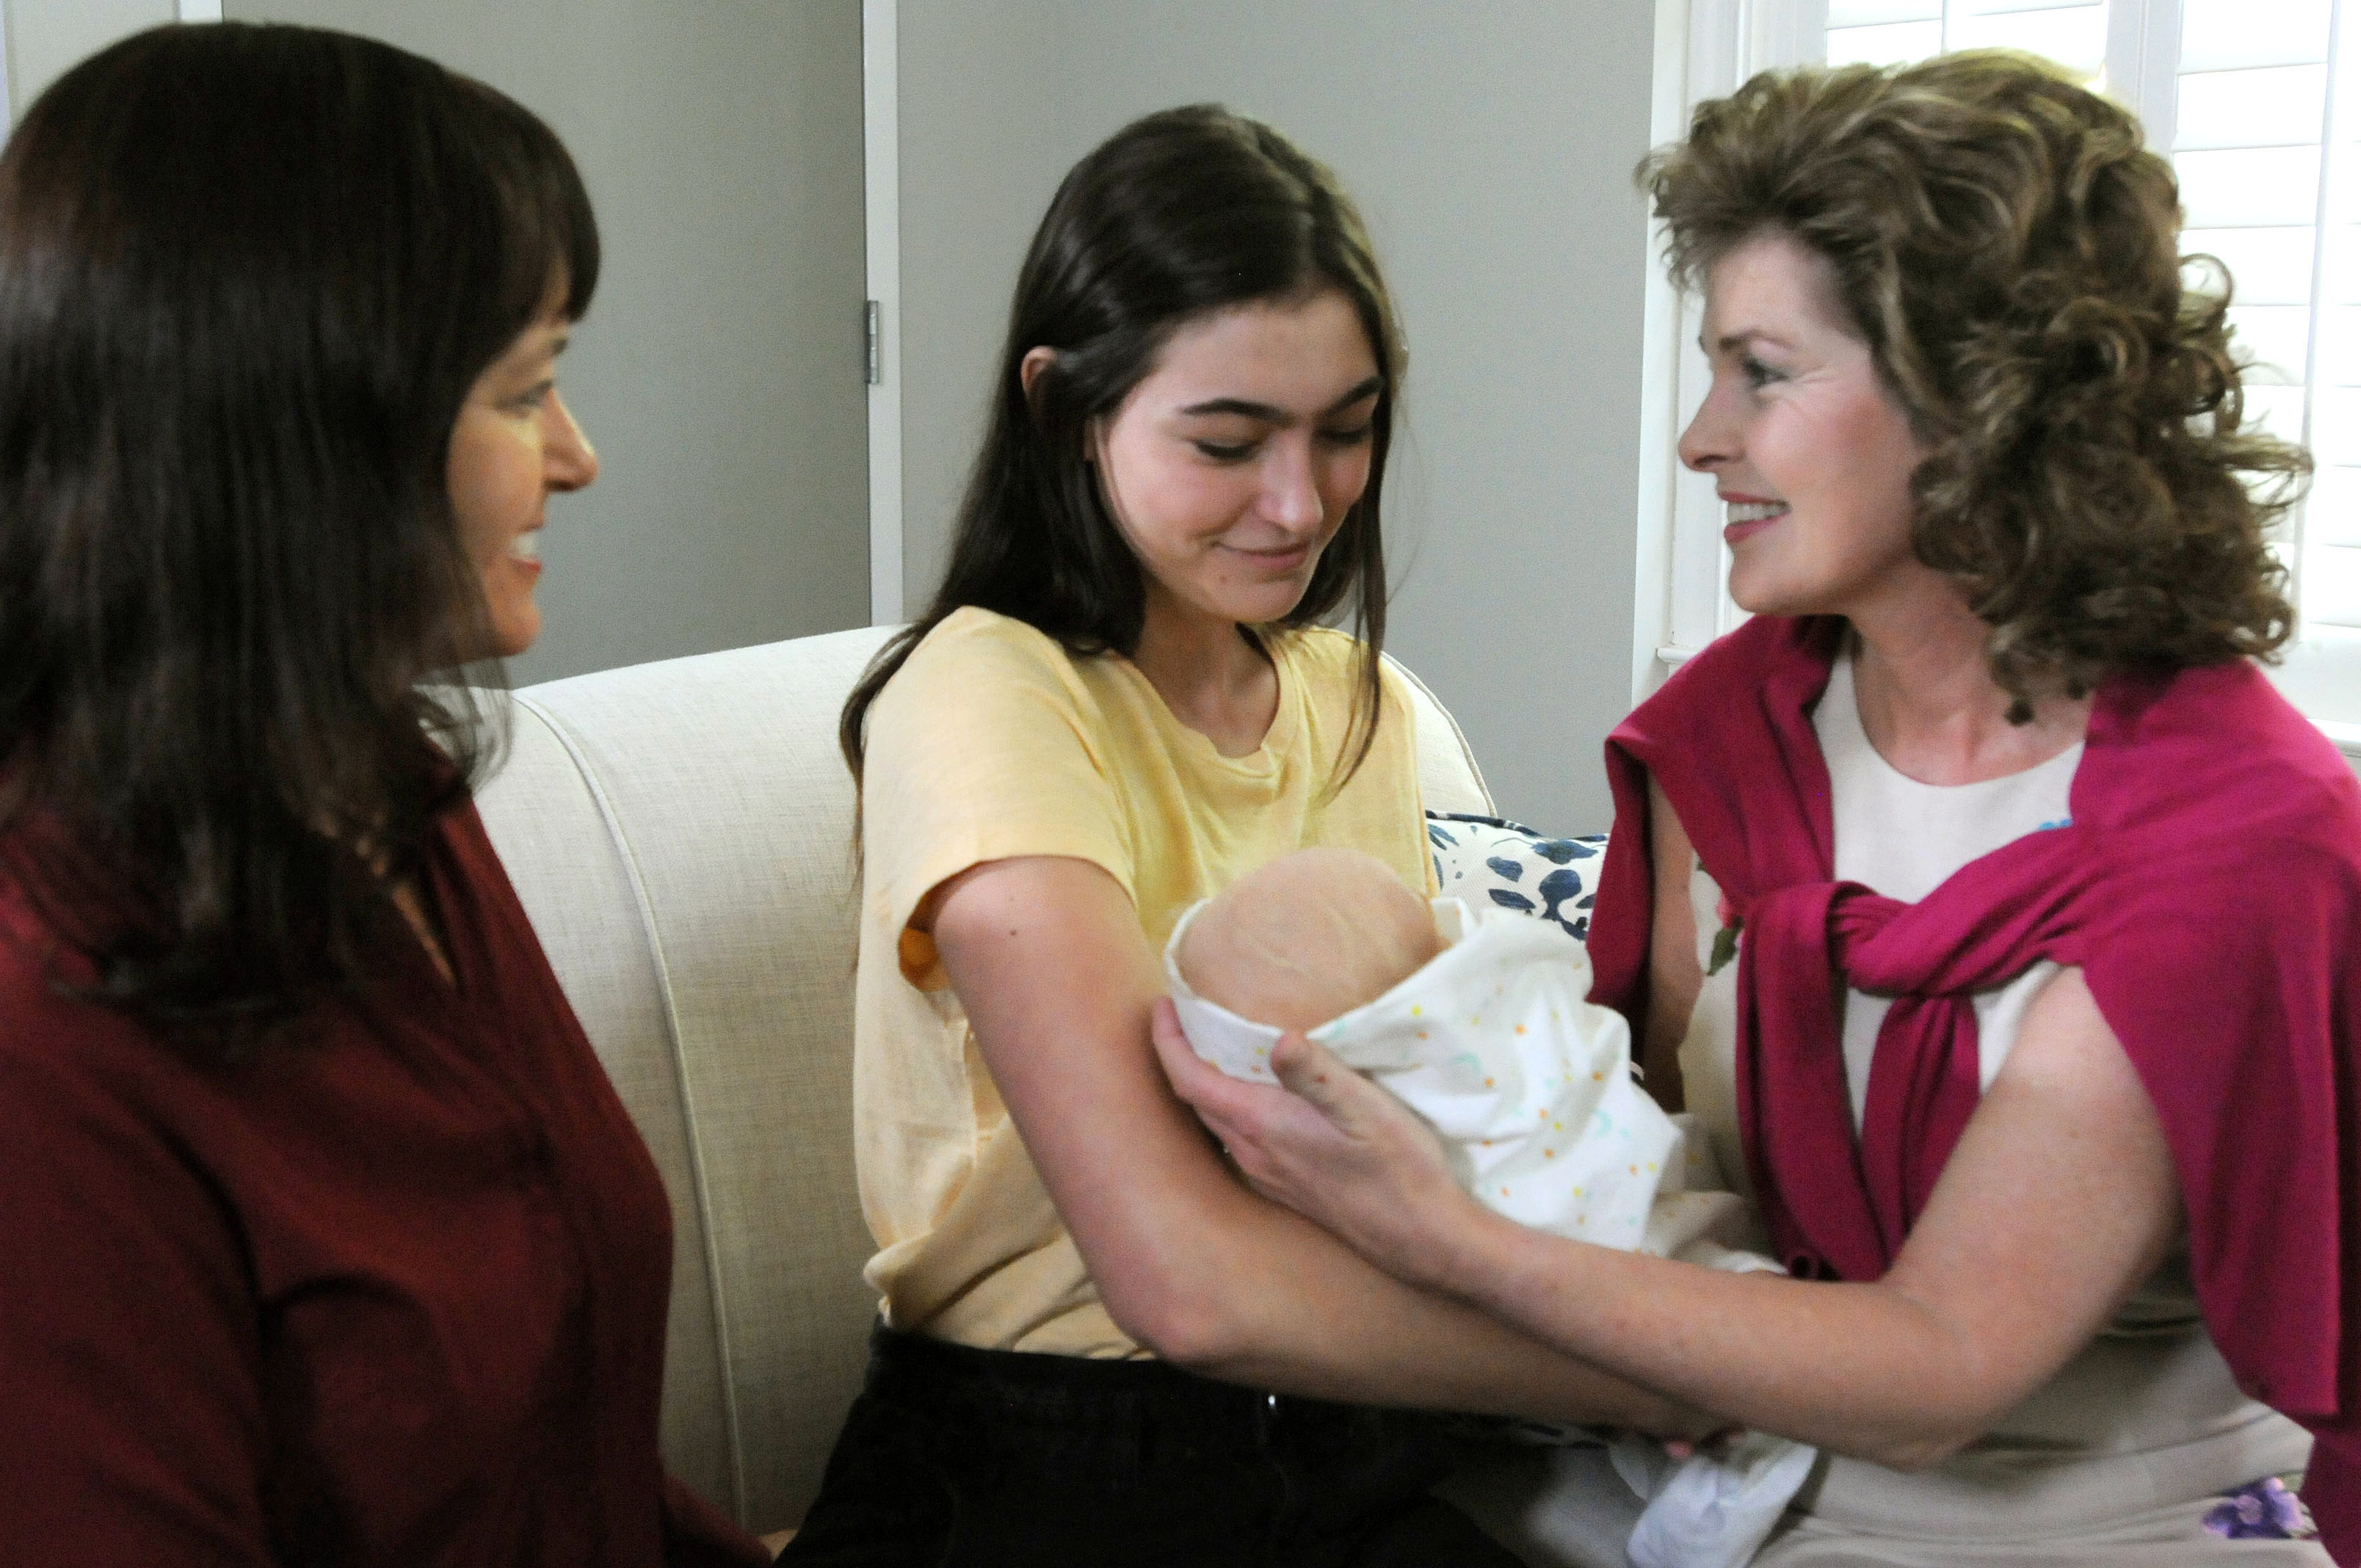 ANNA MEETING BABY STEPHANIE